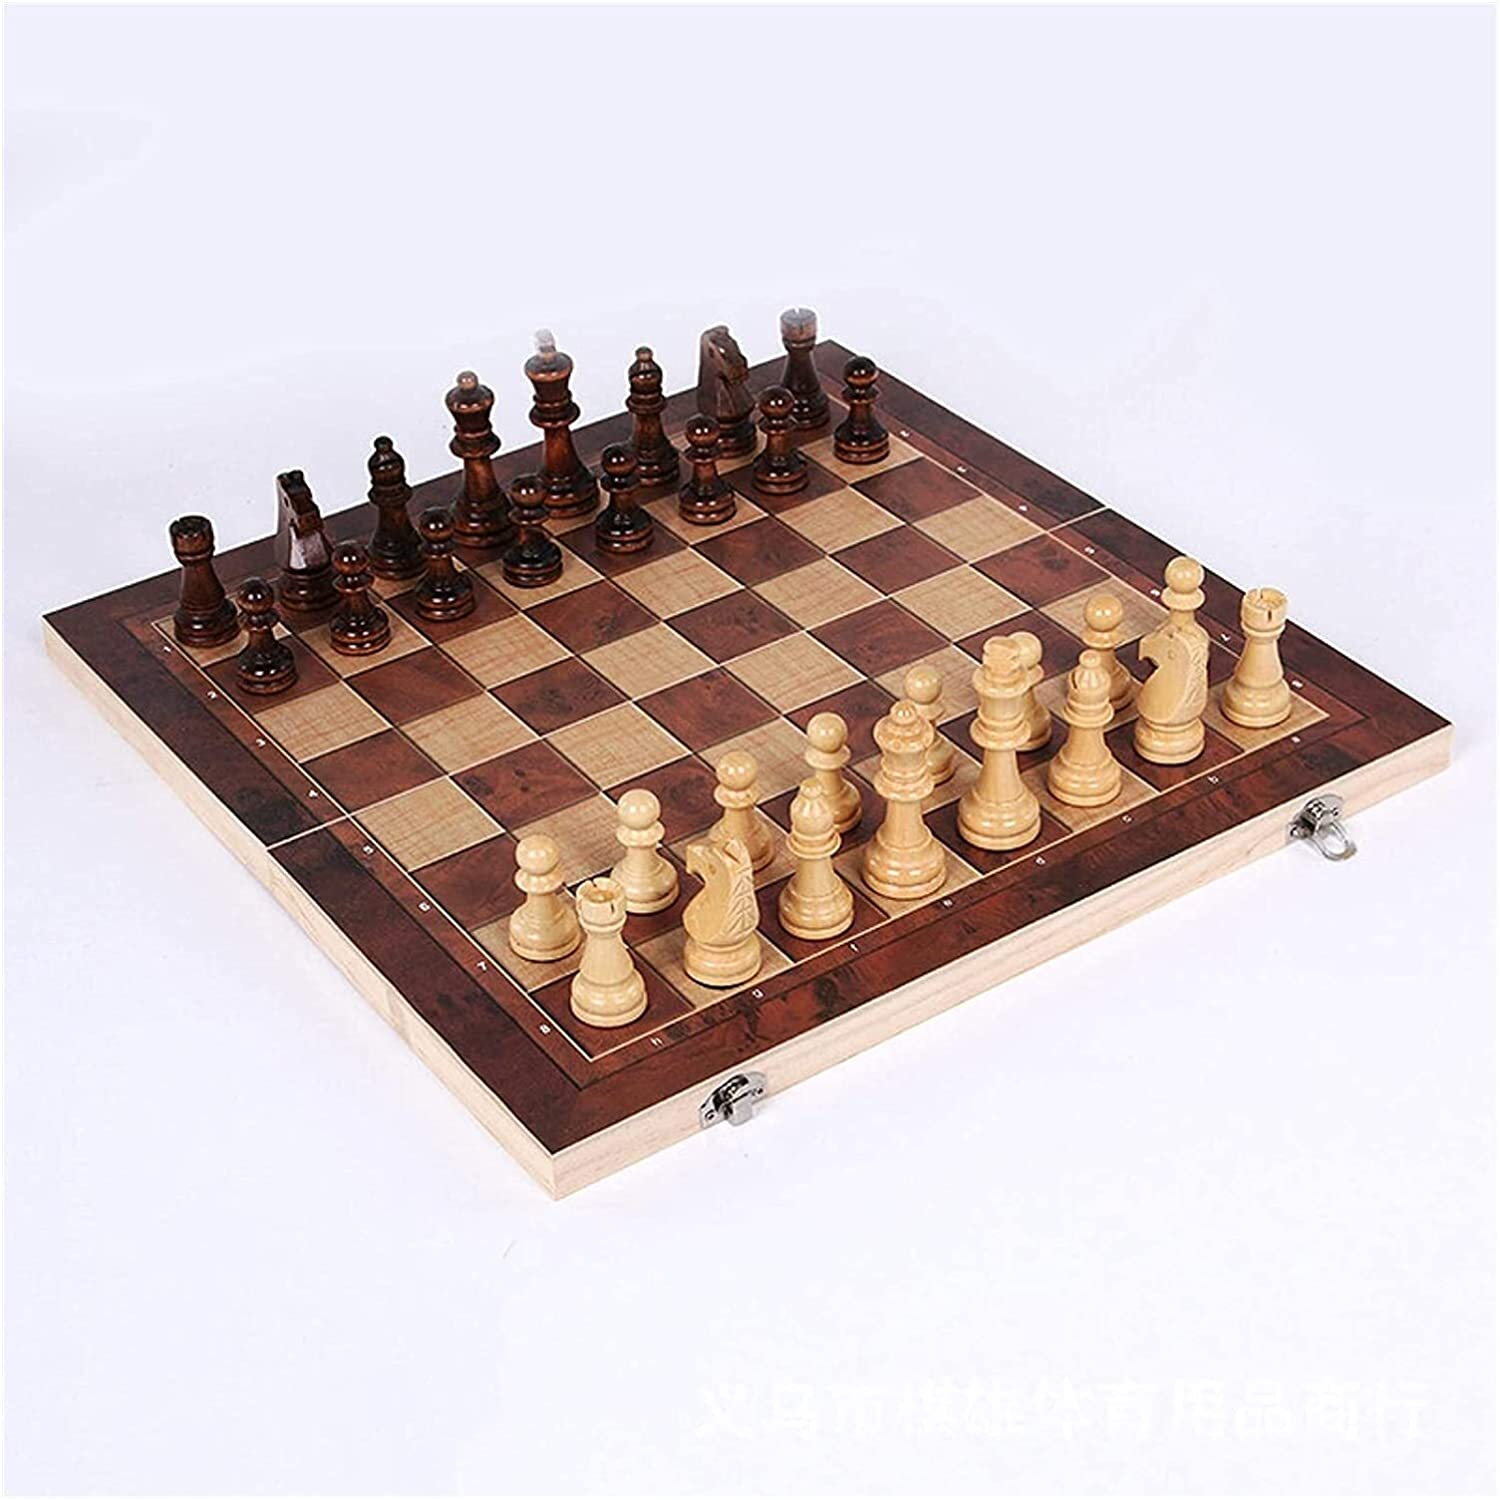 Our shop OFFers the best service MTCWD Wooden Chess Set Magnetic Magn Nippon regular agency Travel Foldable Board